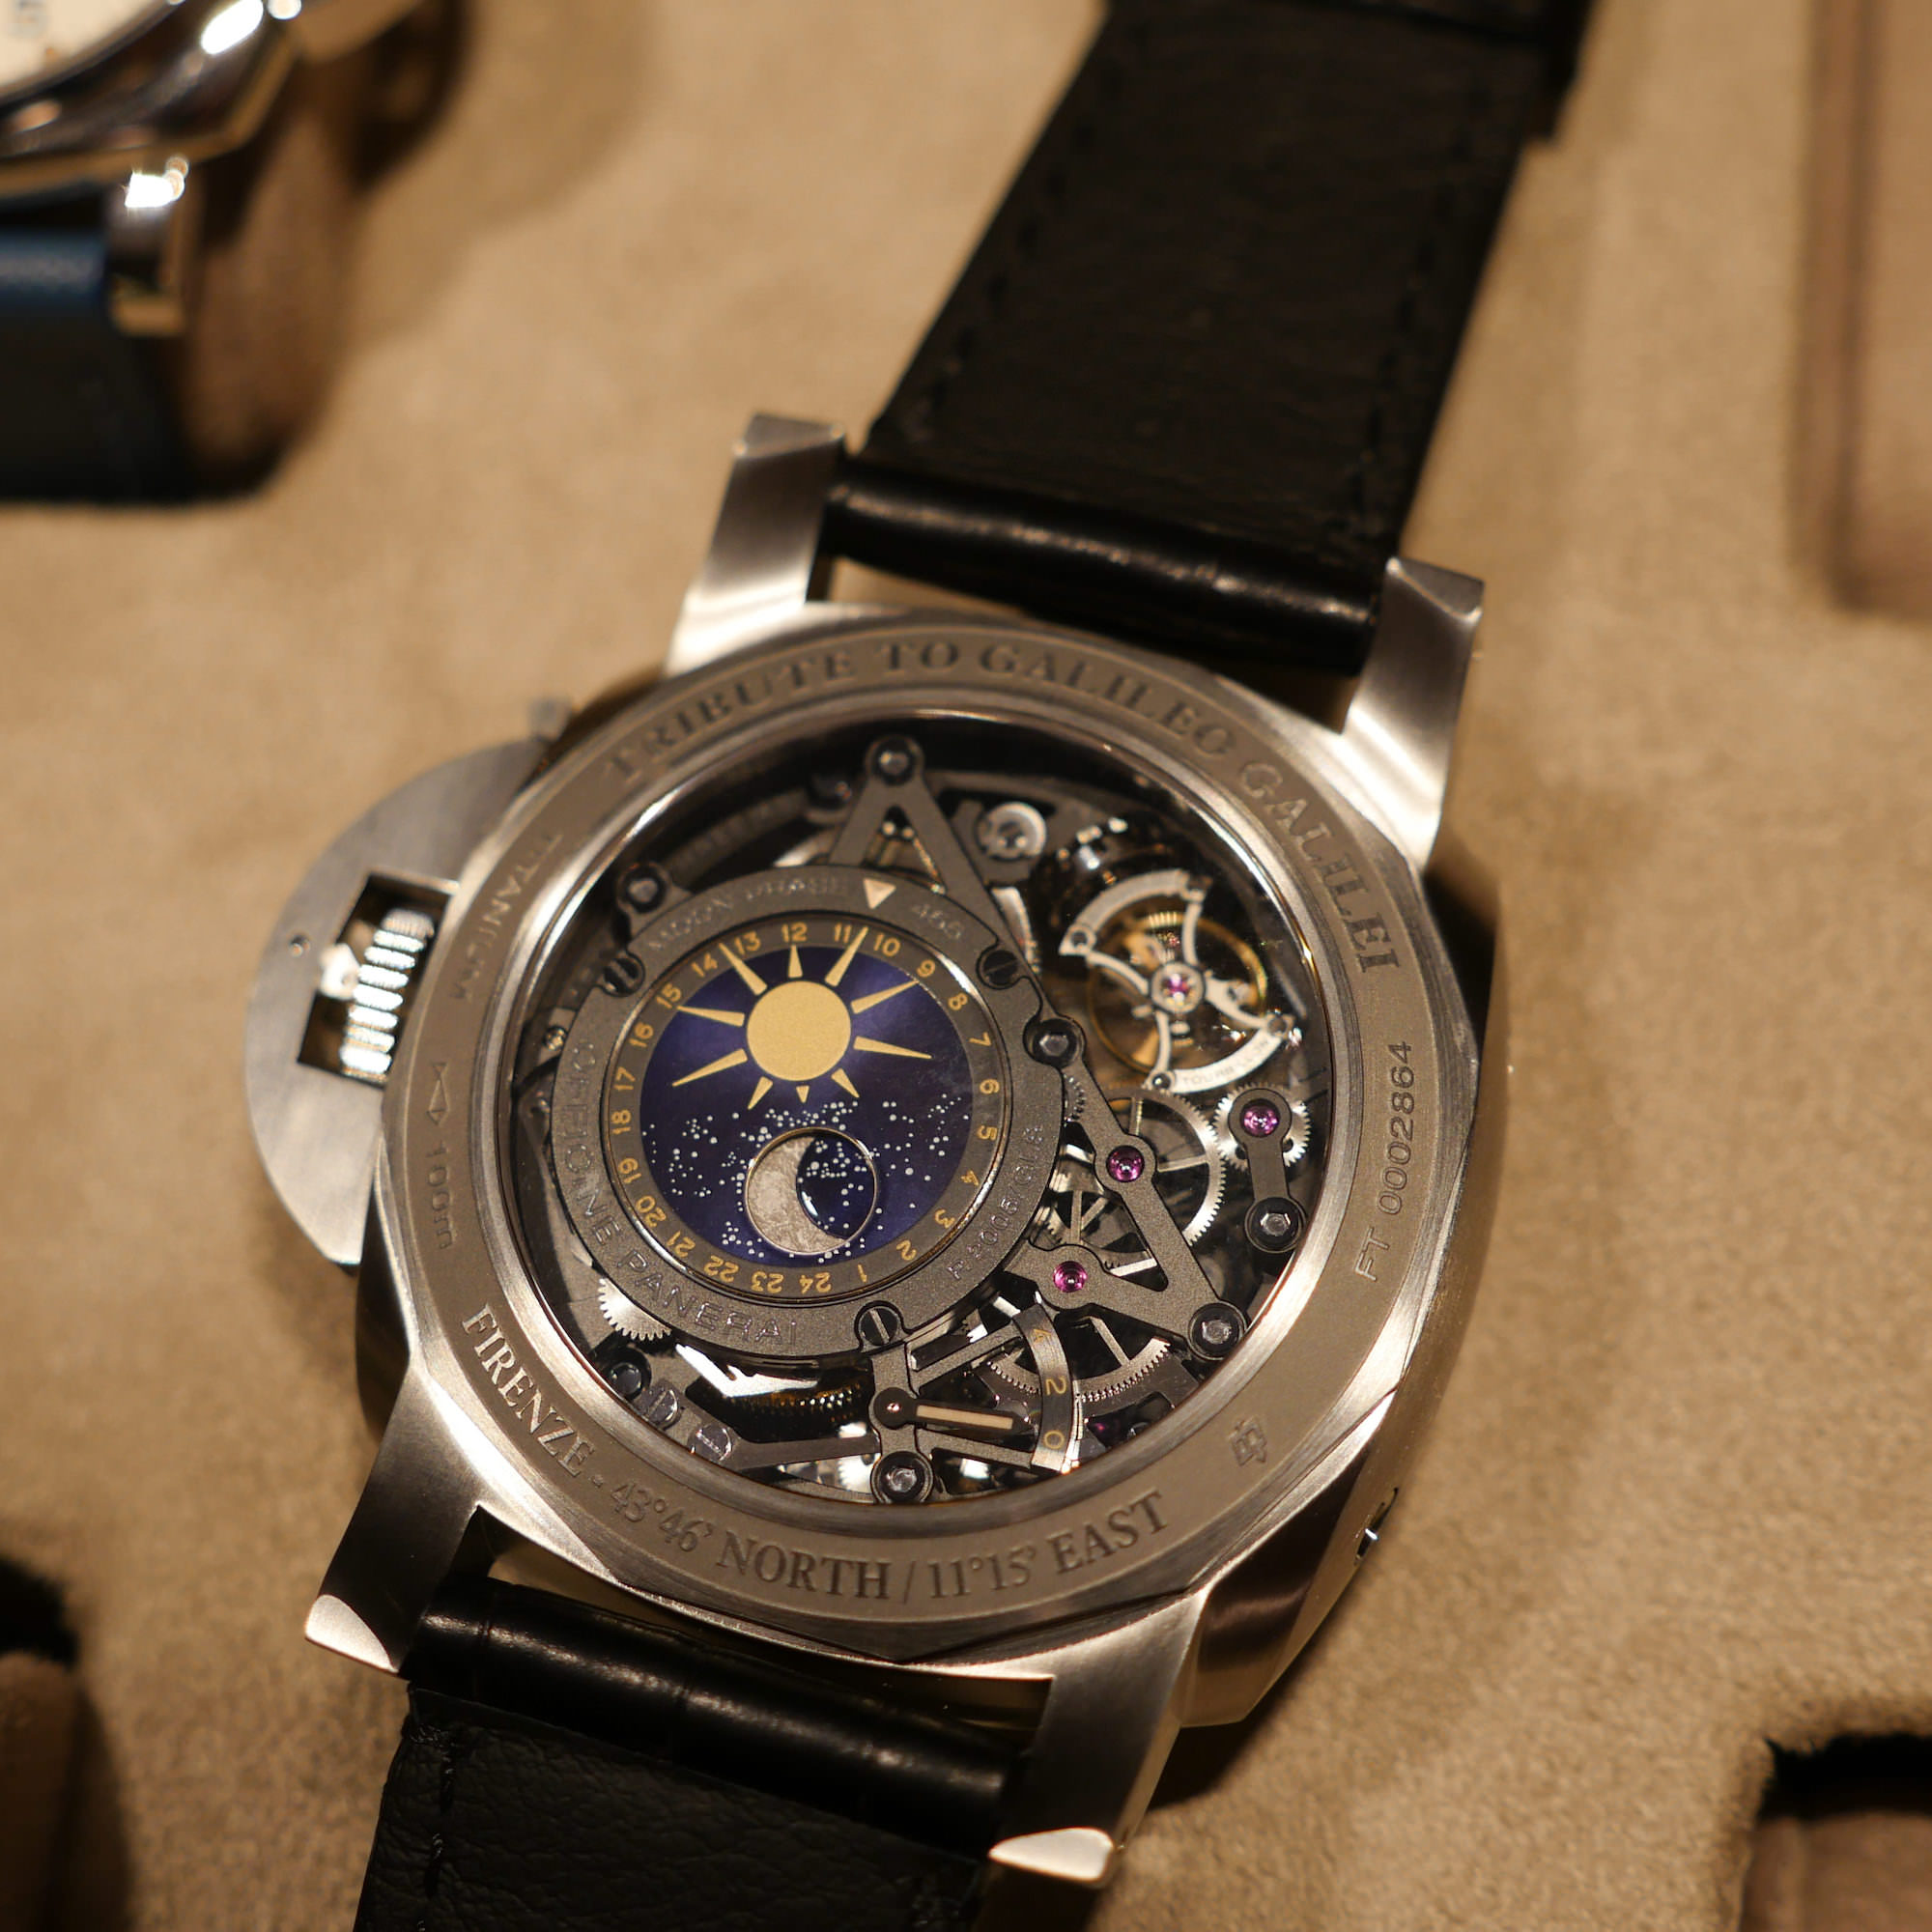 Astronomo Luminor 1950, Tourbillon Phase de Lune, GMT, 50mm caseback dos